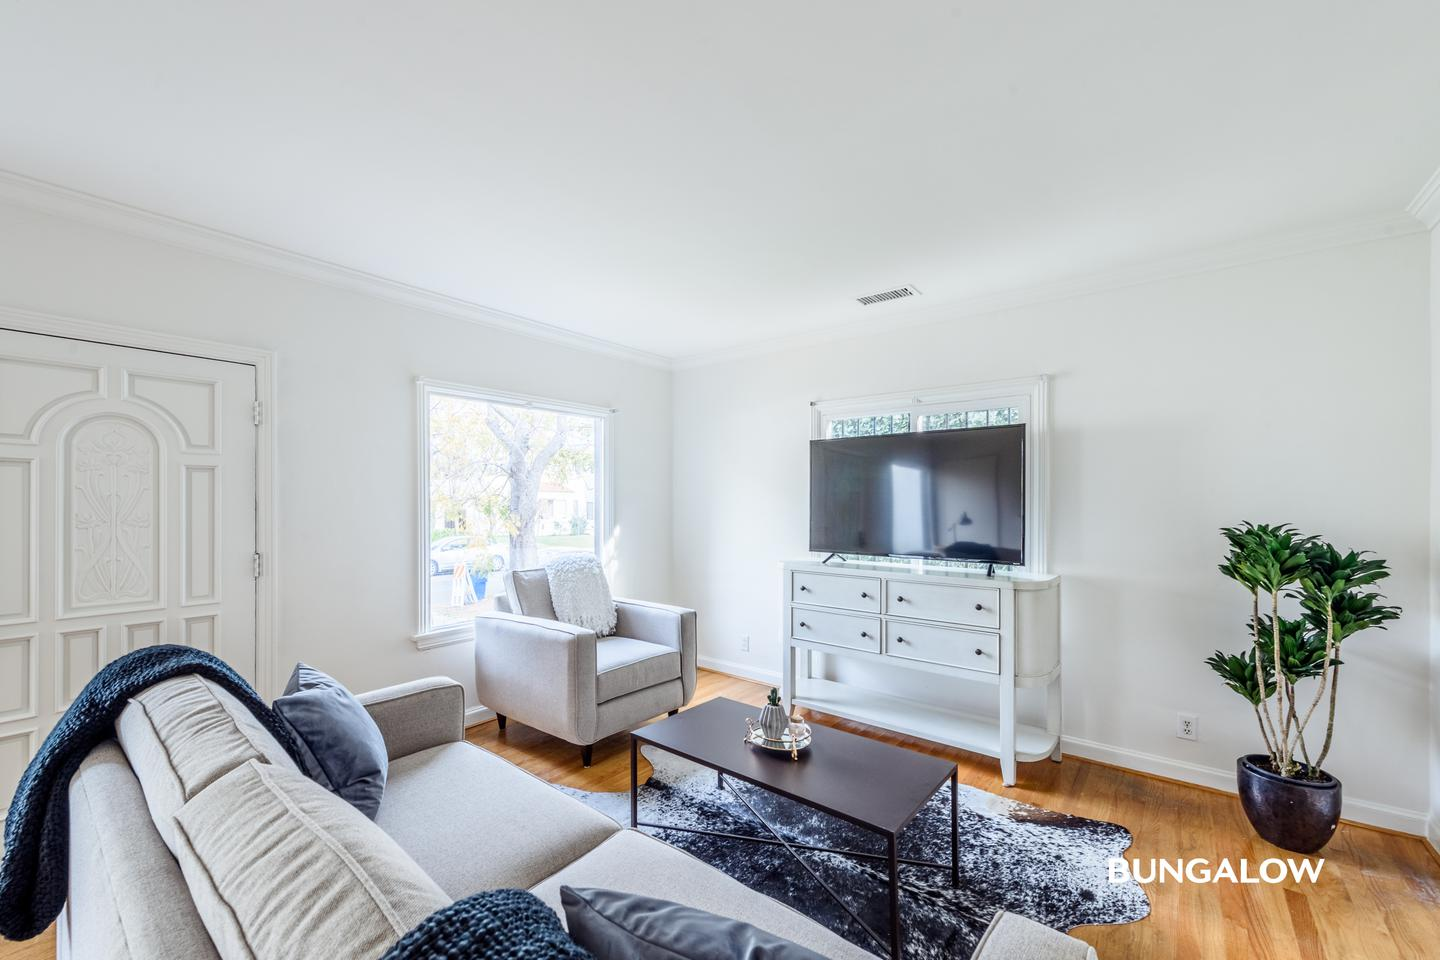 Apartments Near UCLA Private Bedroom in Charming Fairfax Home With Private Backyard for University of California - Los Angeles Students in Los Angeles, CA